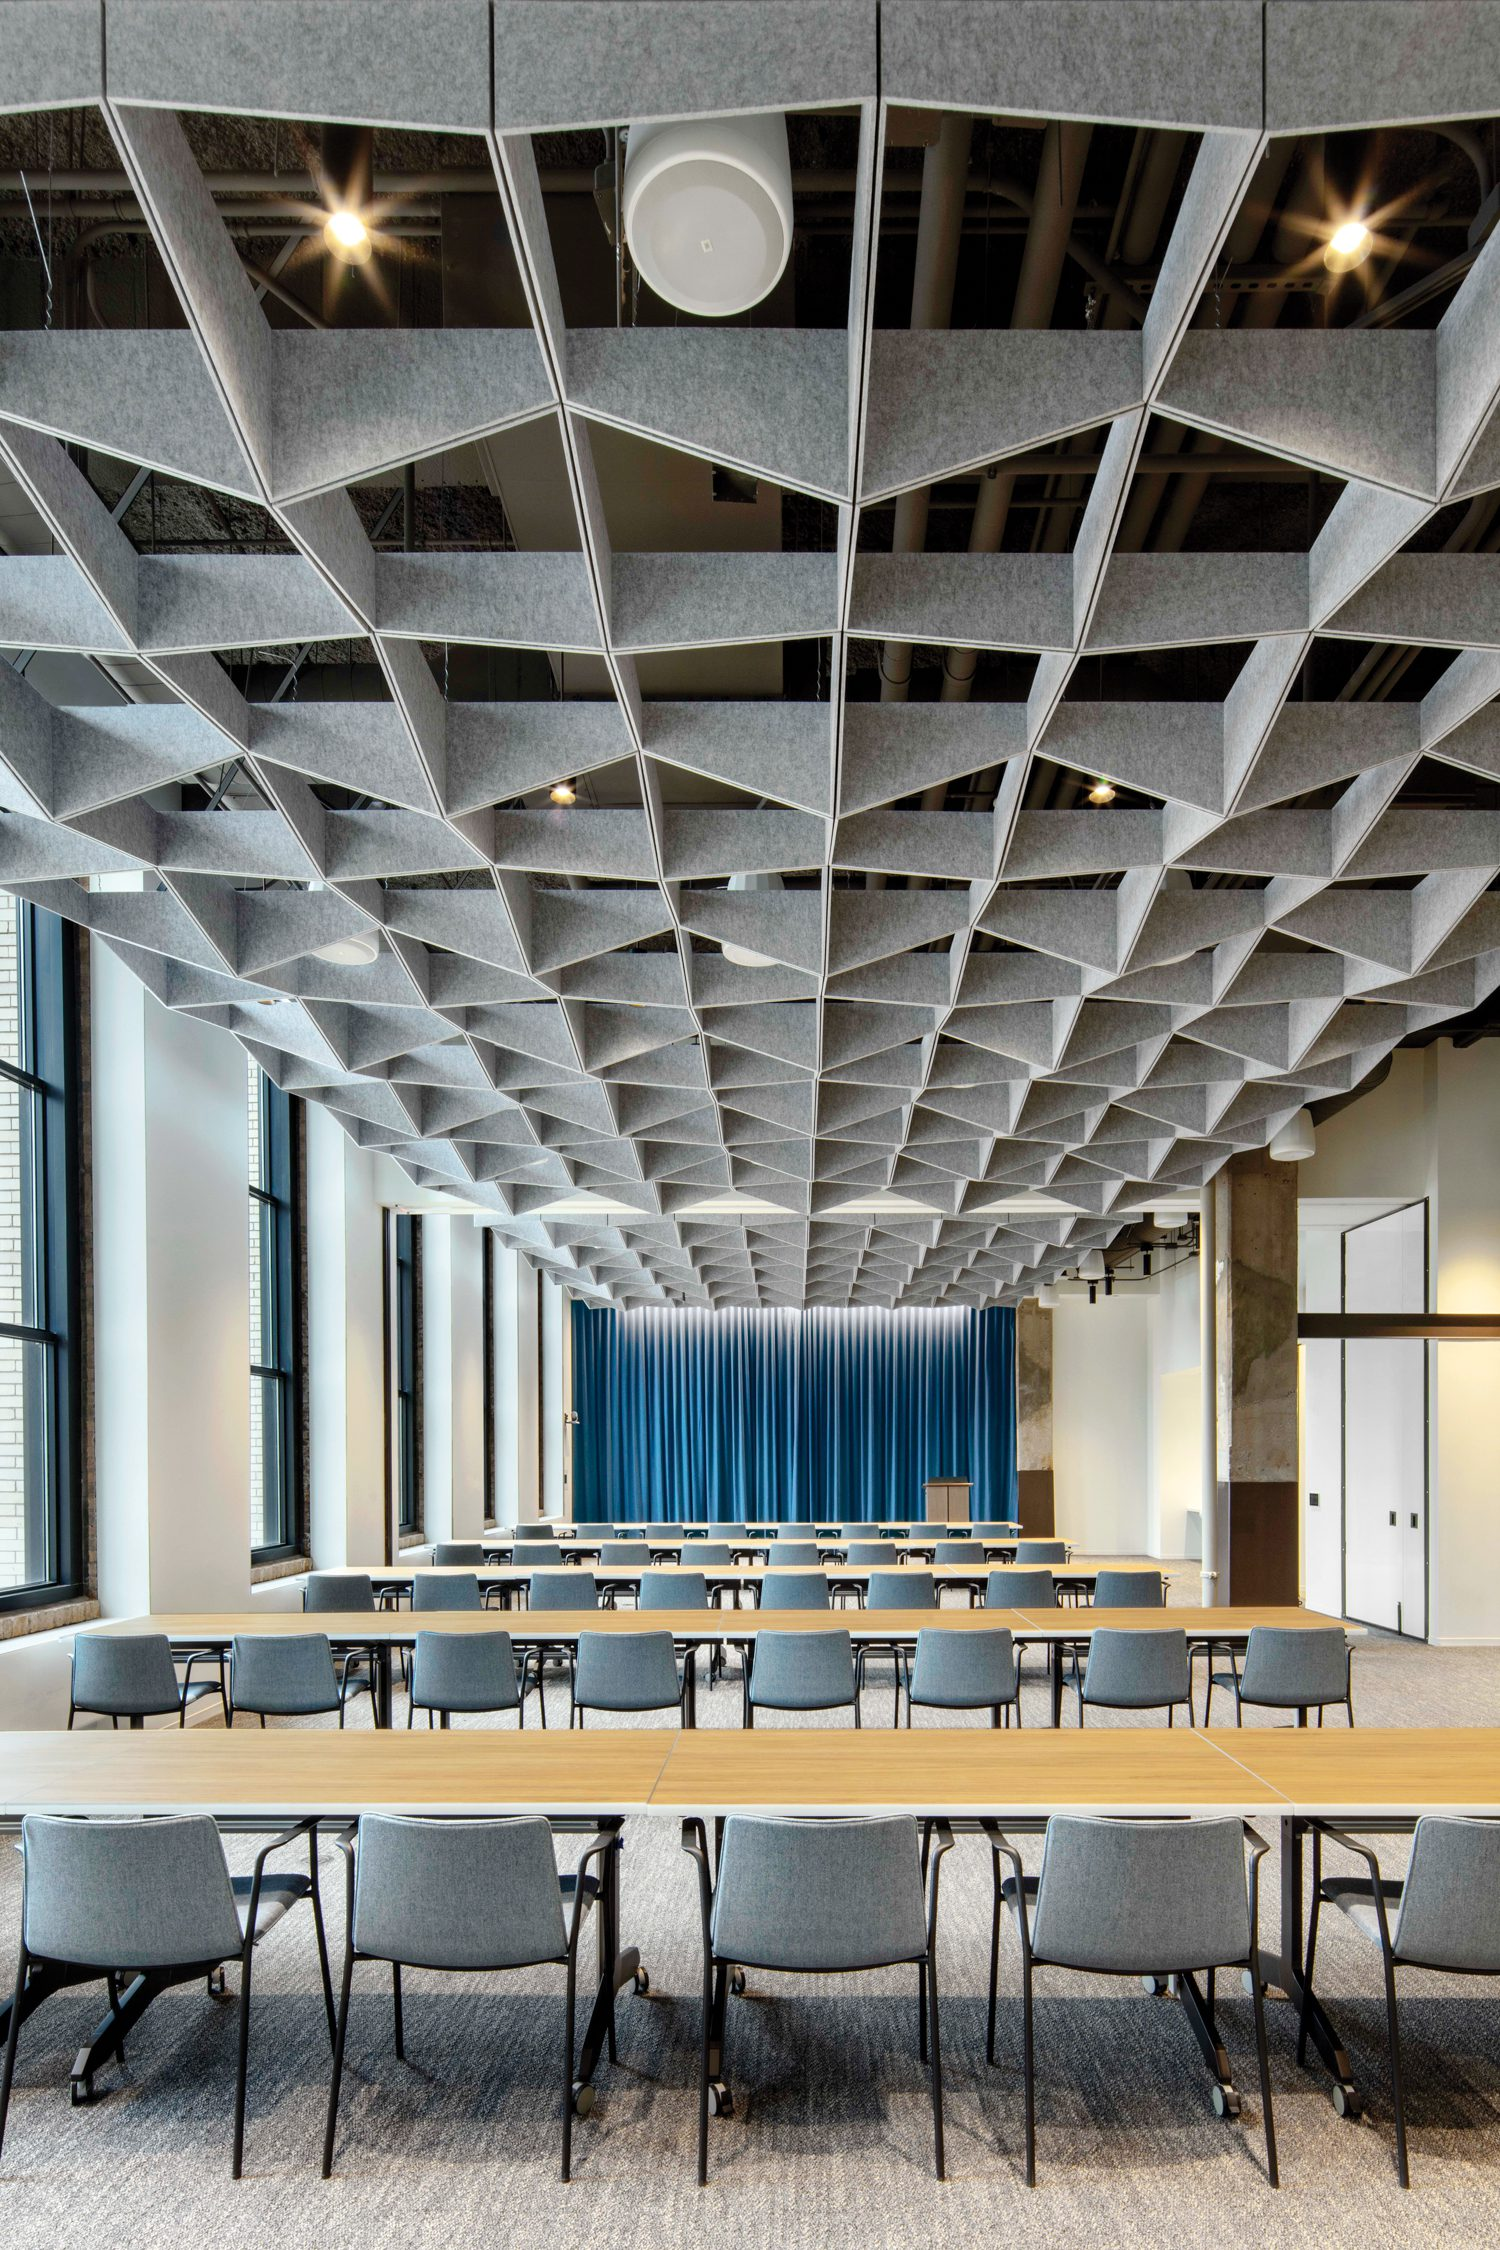 Custom felt ceiling baffles improve acoustics while helping create a sense of intimacy in the Options Institute, a multifunctional education space.